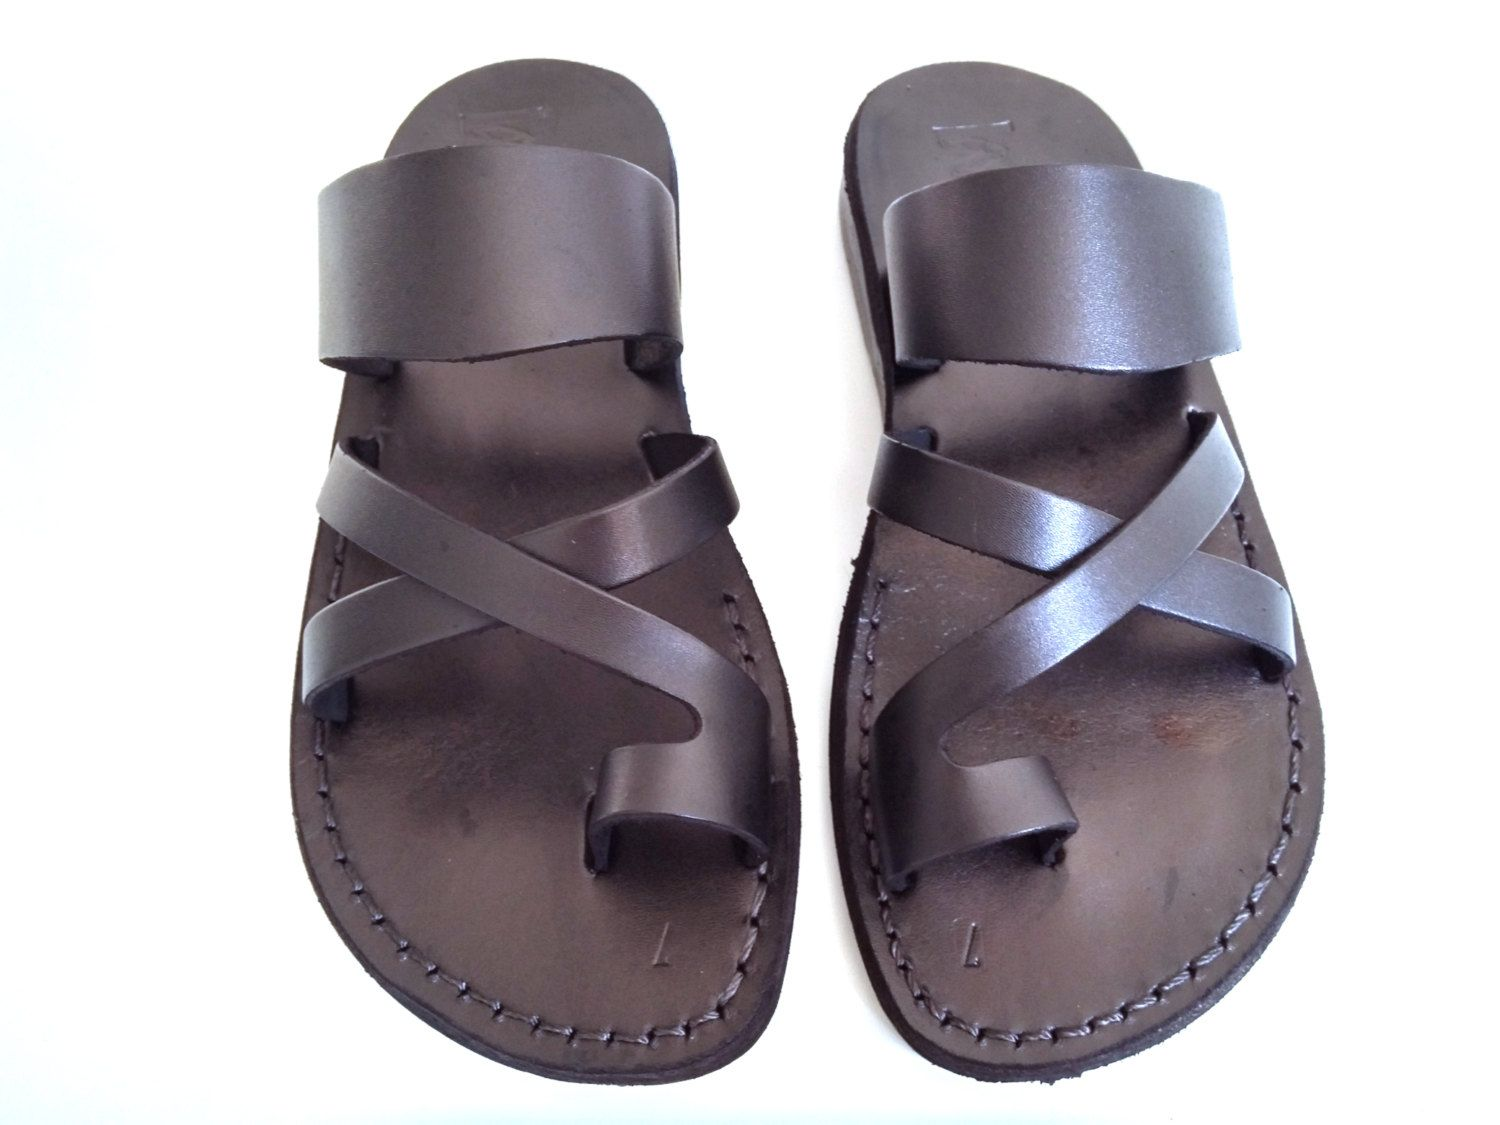 eefd06dd84714 Leather Sandals, Leather Sandals Women, Sandals, Women's Shoes ...